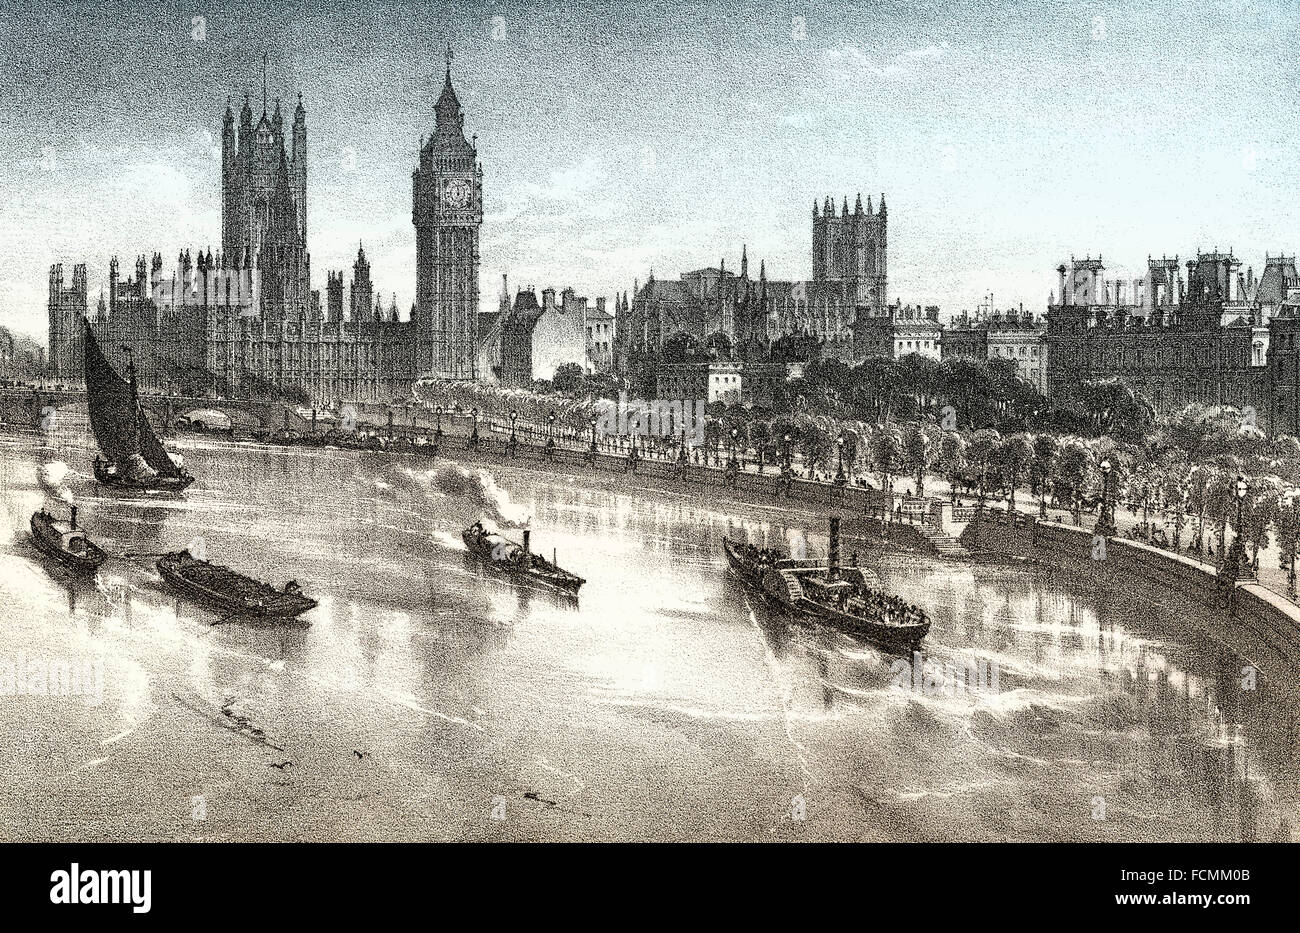 The Thames Embankment, 19th century, River Thames in central London, England - Stock Image